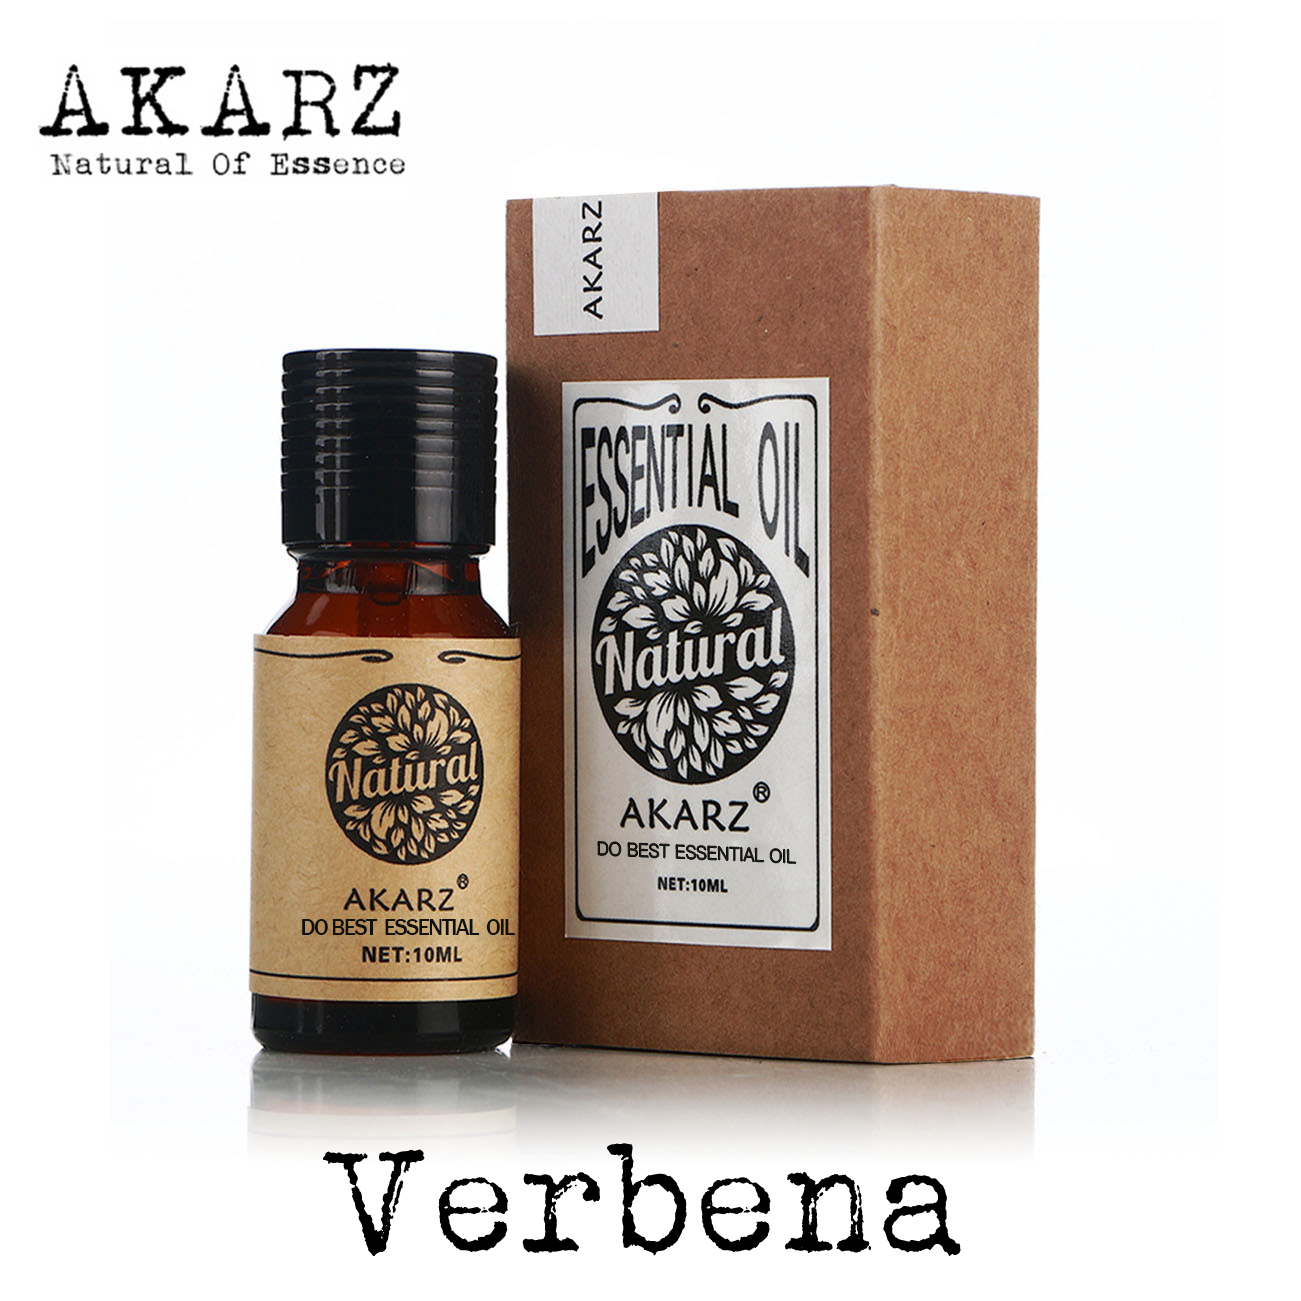 Verbena Essential Oil AKARZ Brand Natural Oiliness Cosmetics Candle Soap Scents Making DIY Odorant Raw Material Verbena Oil